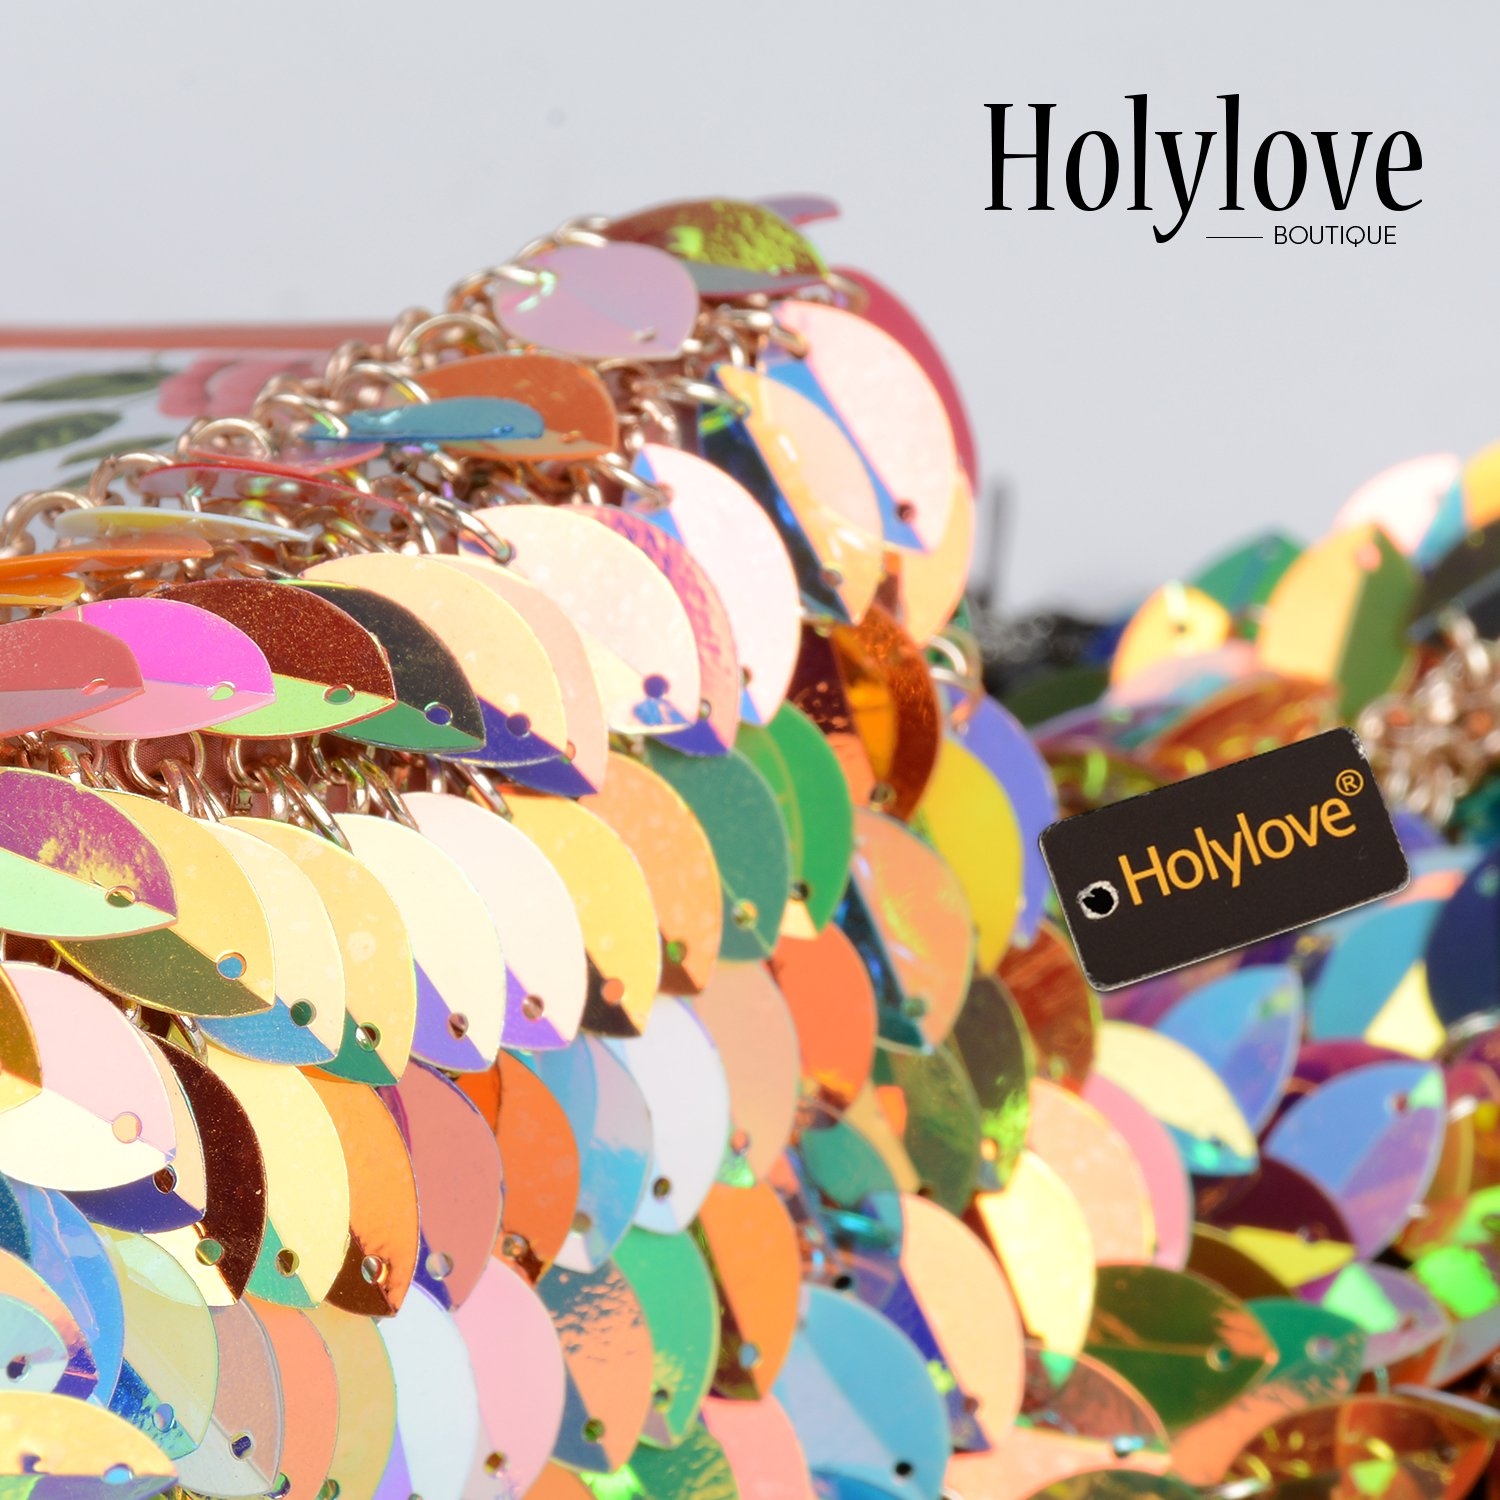 Holylove Paillette Sequin Bra Tops Body Chain Necklace Jewelry Colorful Sexy Charm for Women Lady Summer Beach Hawaiian Style Bikini Beachwear - HLBN5 Colorful by Holylove (Image #4)